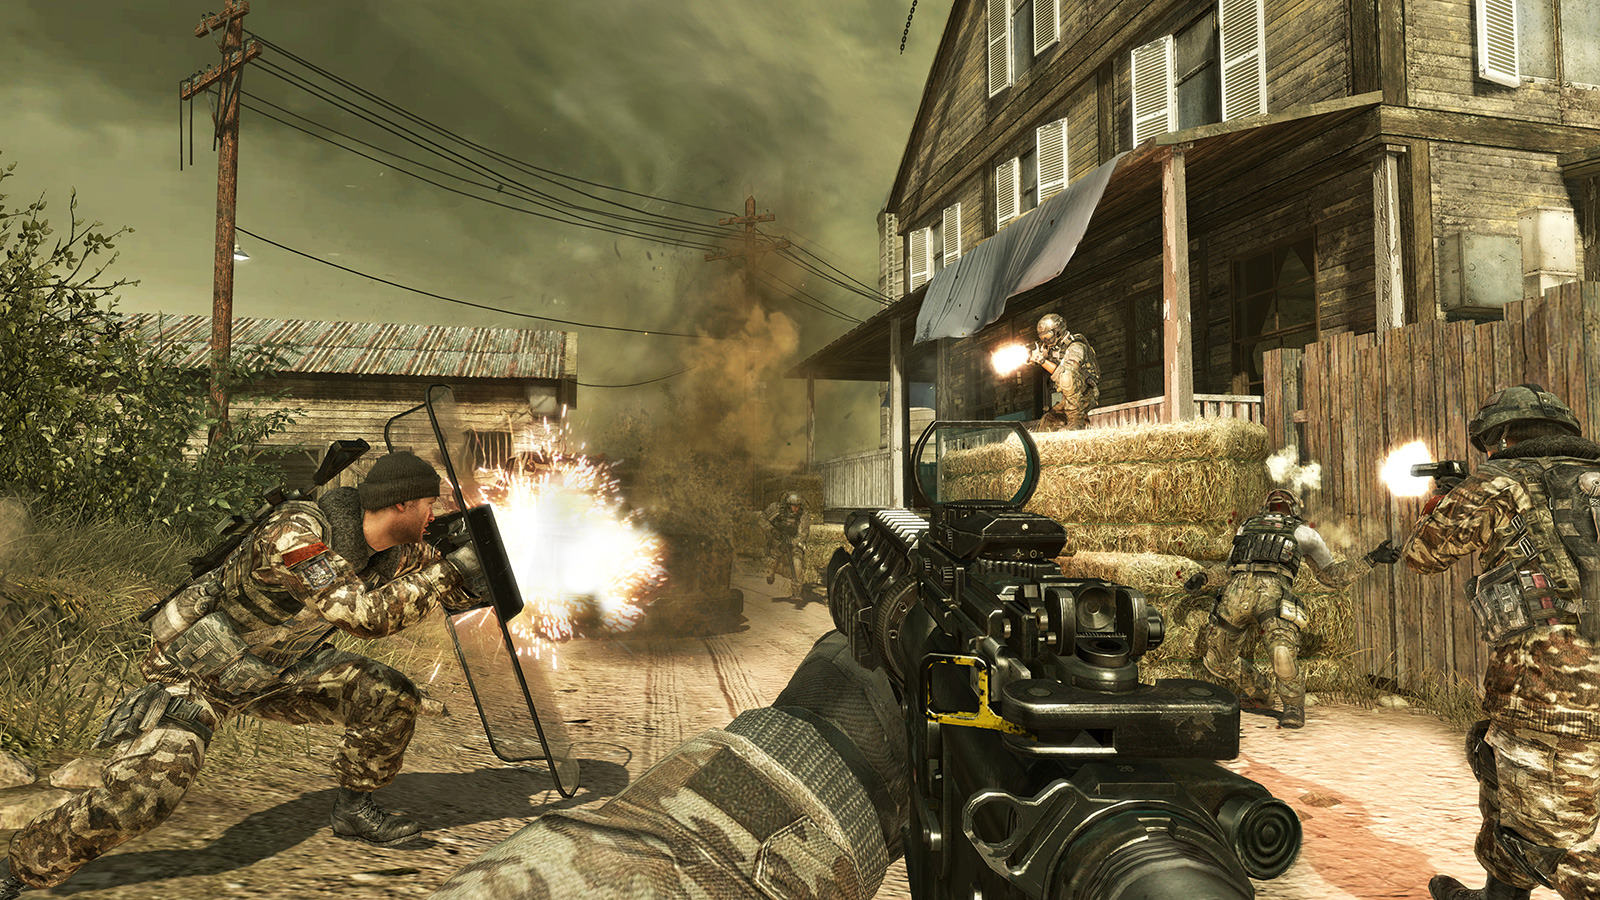 Modern warfare 2 continues the gripping and heart-racing